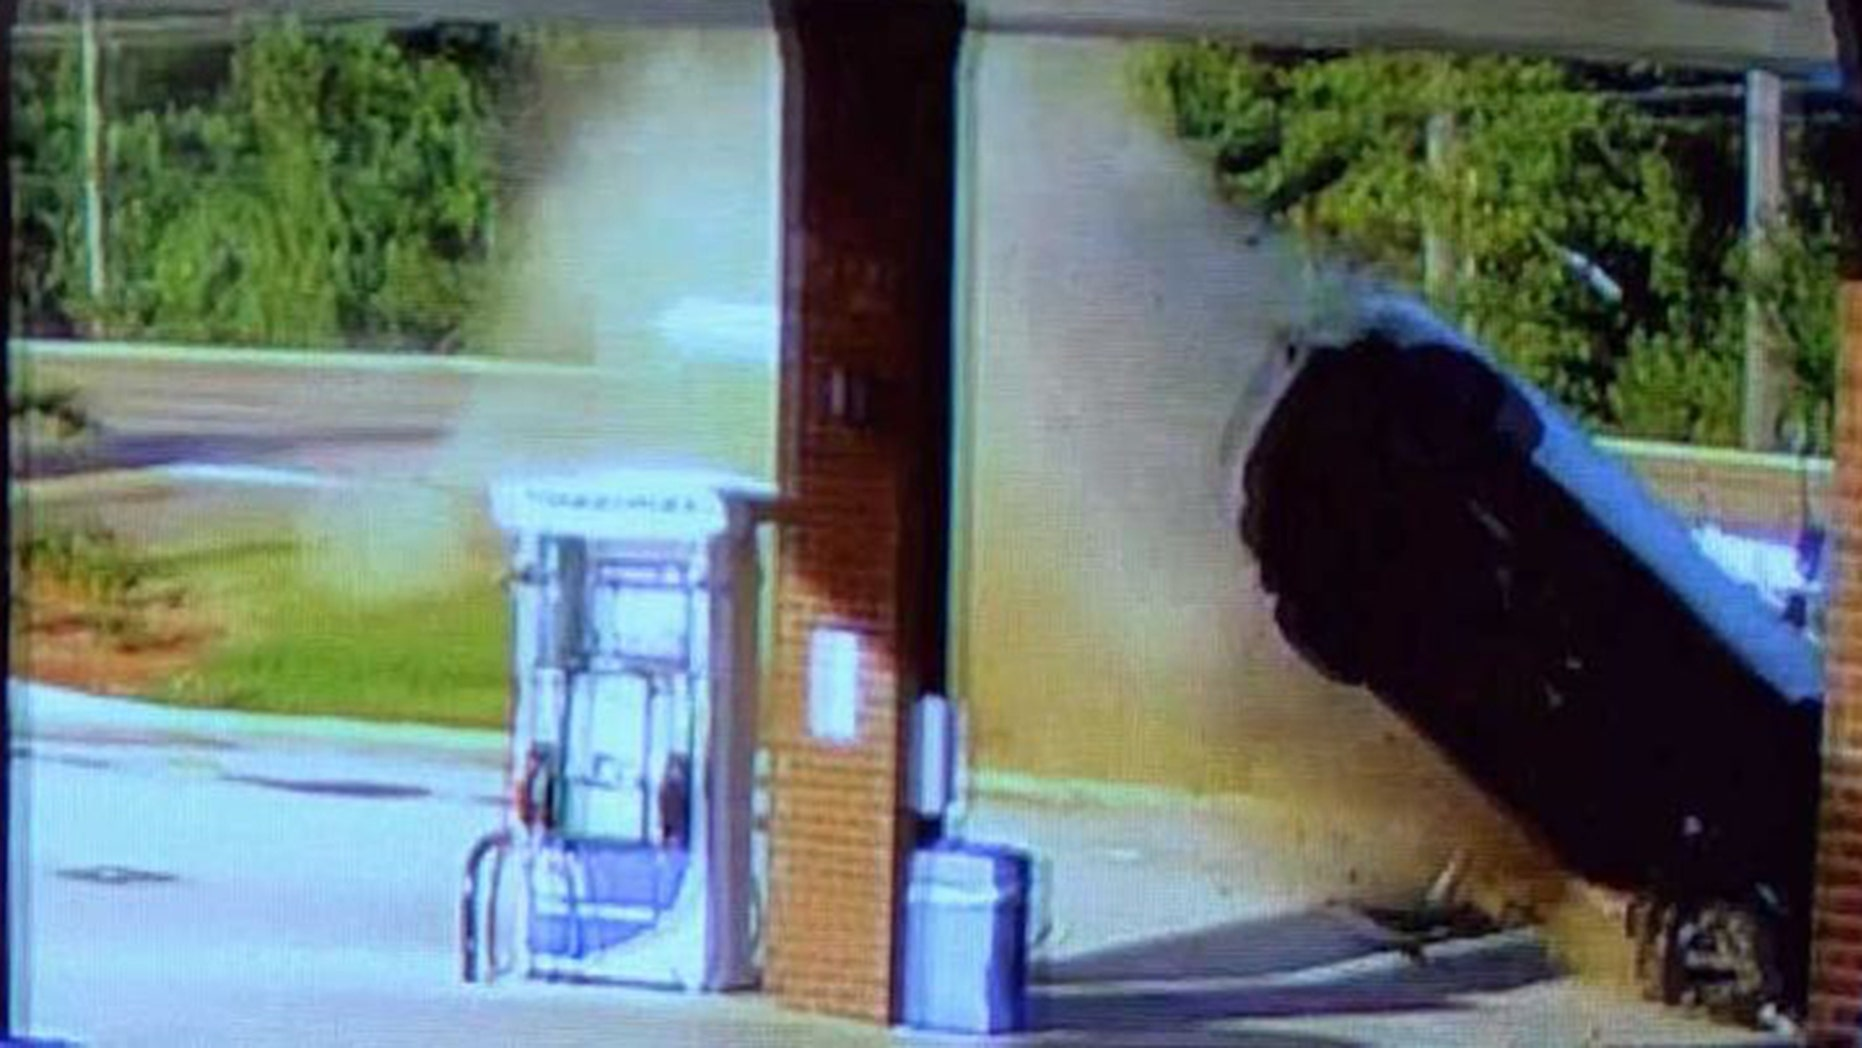 Image from video showing an out-of-control car crashing into a gas station in Flowood, Miss., Thursday.